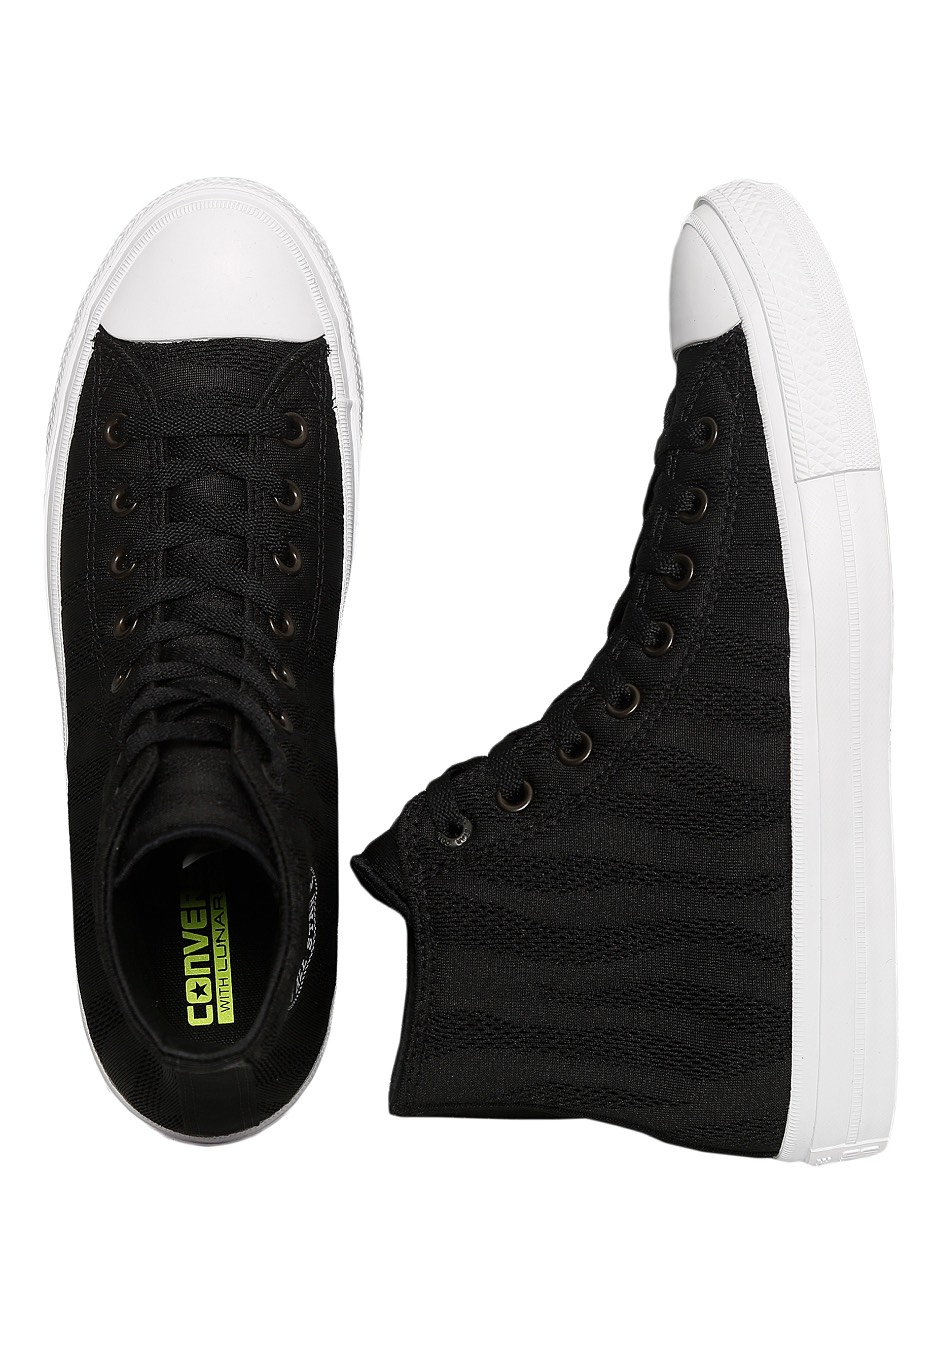 Converse - Chuck Taylor All Star II Hi Black White Gum - Shoes -  Impericon.com UK c1afc19526